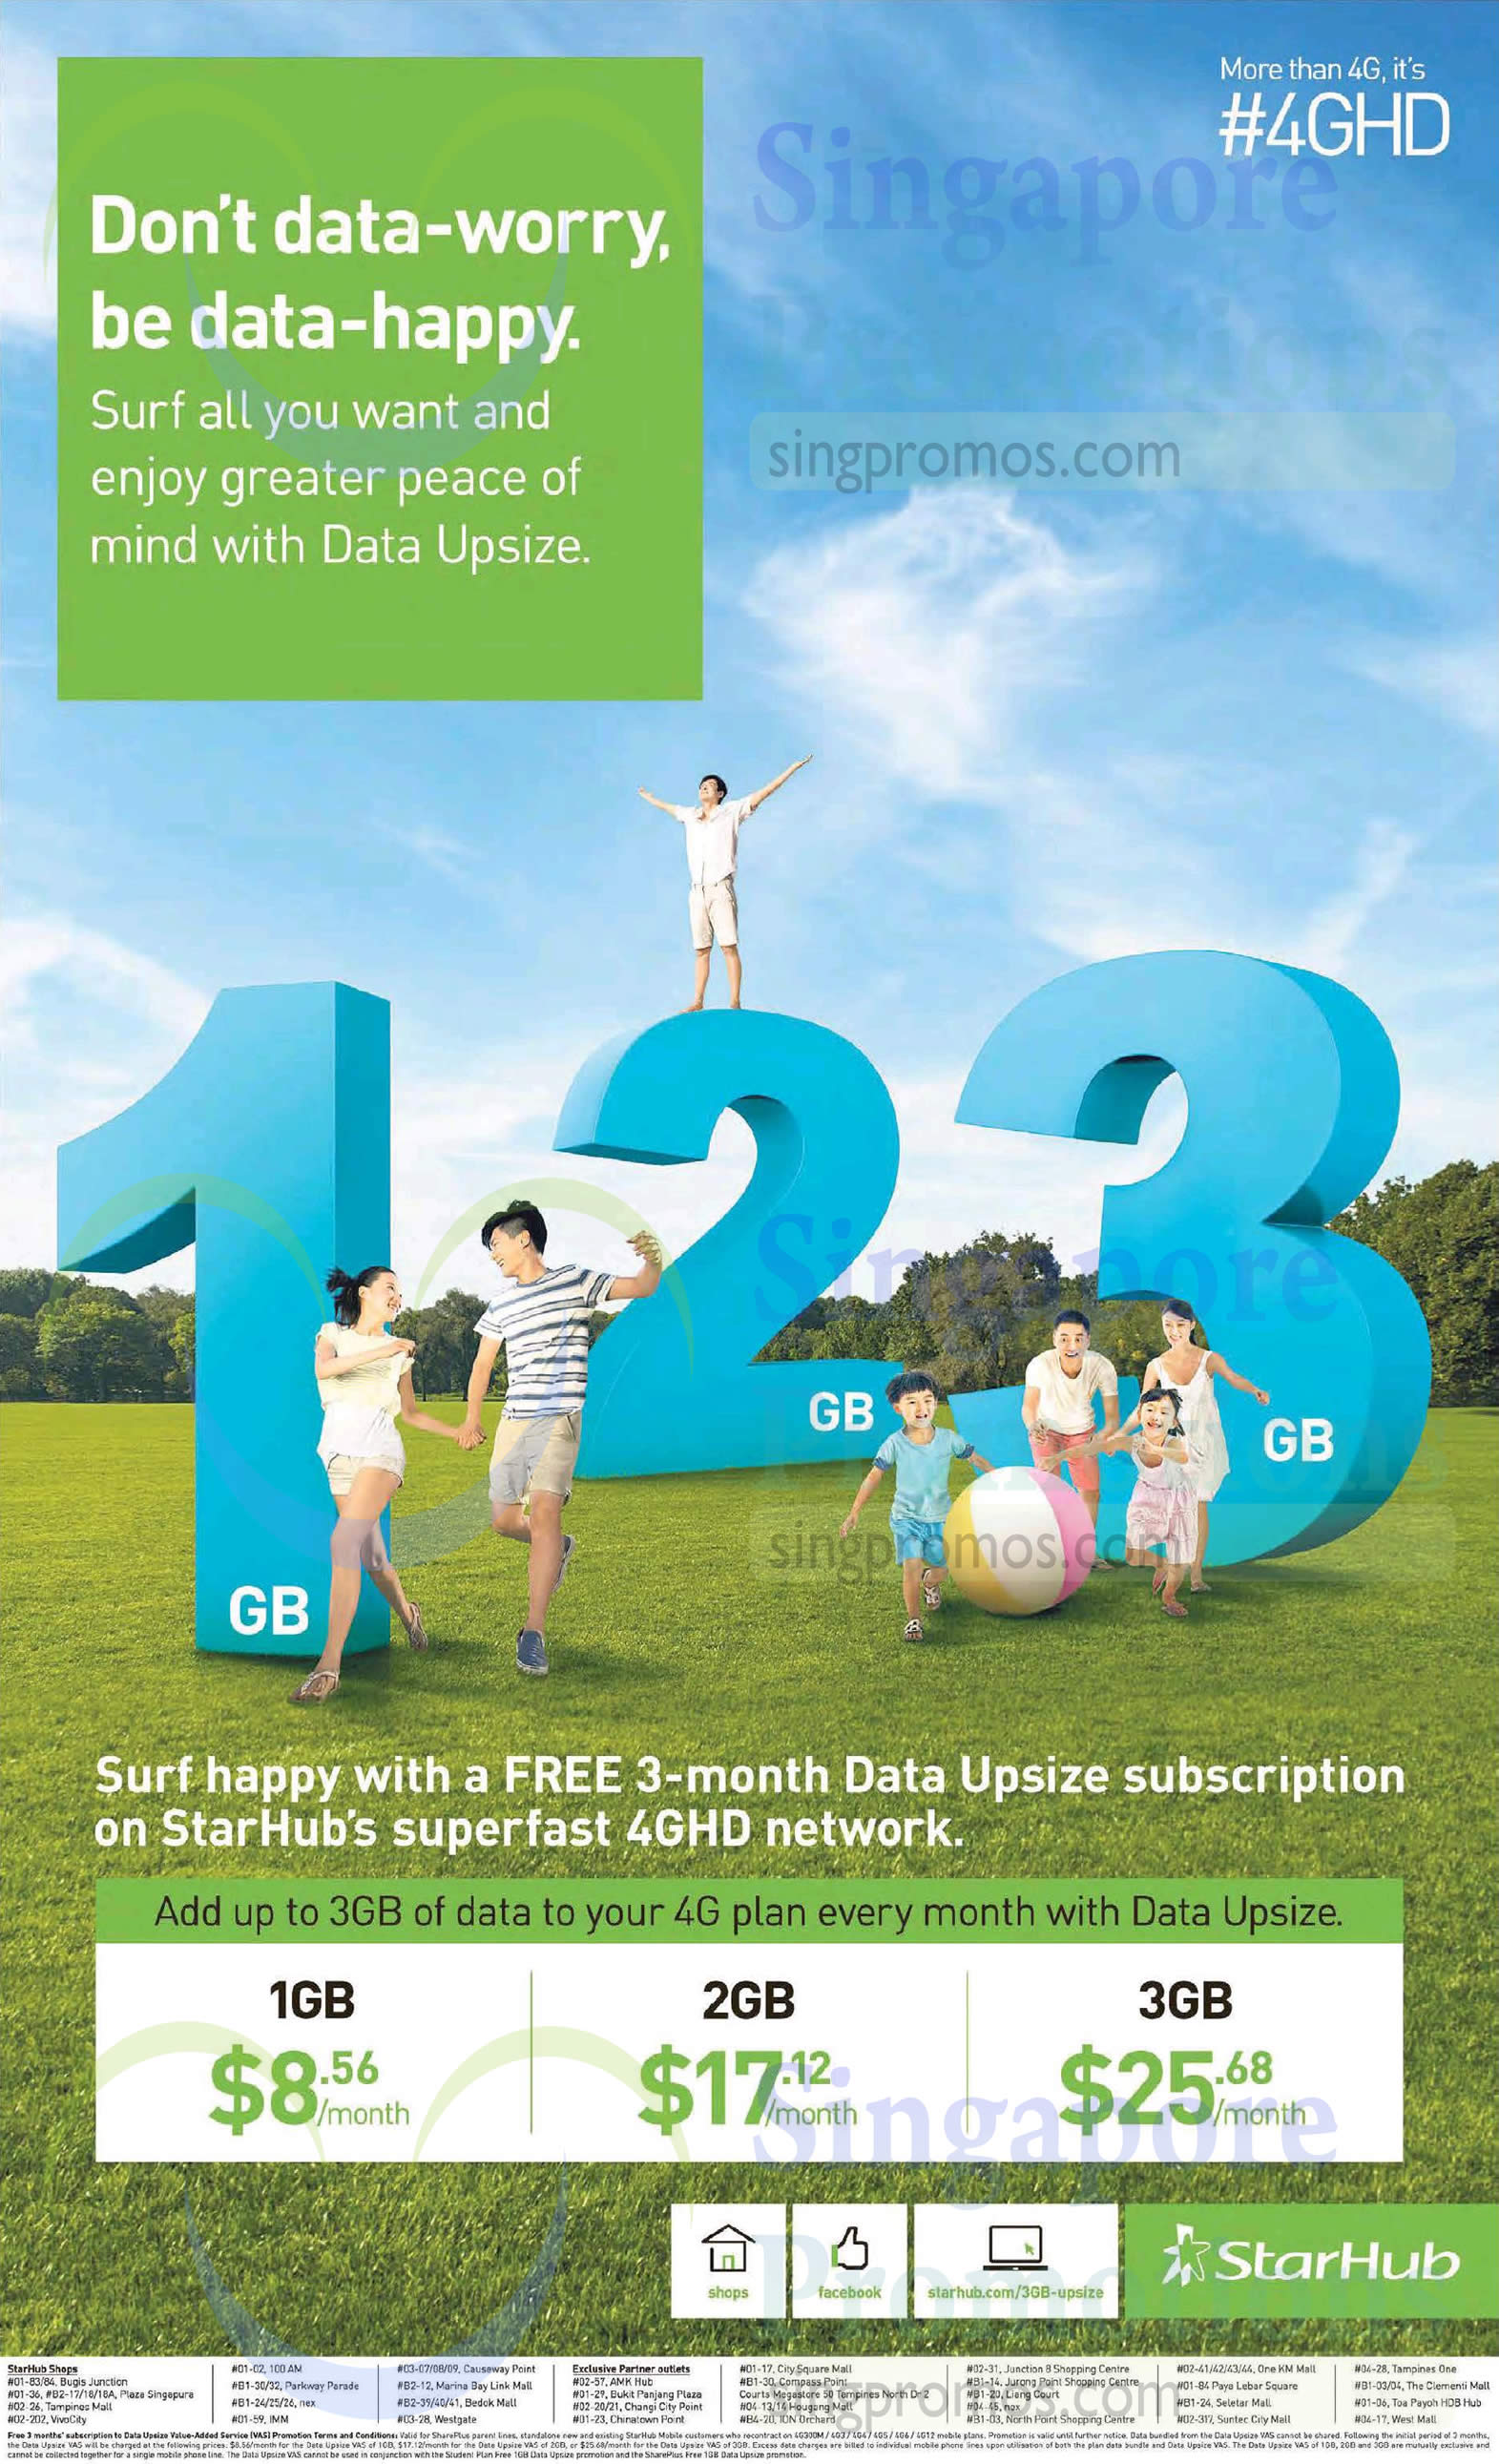 Data Upsize Up to 3GB